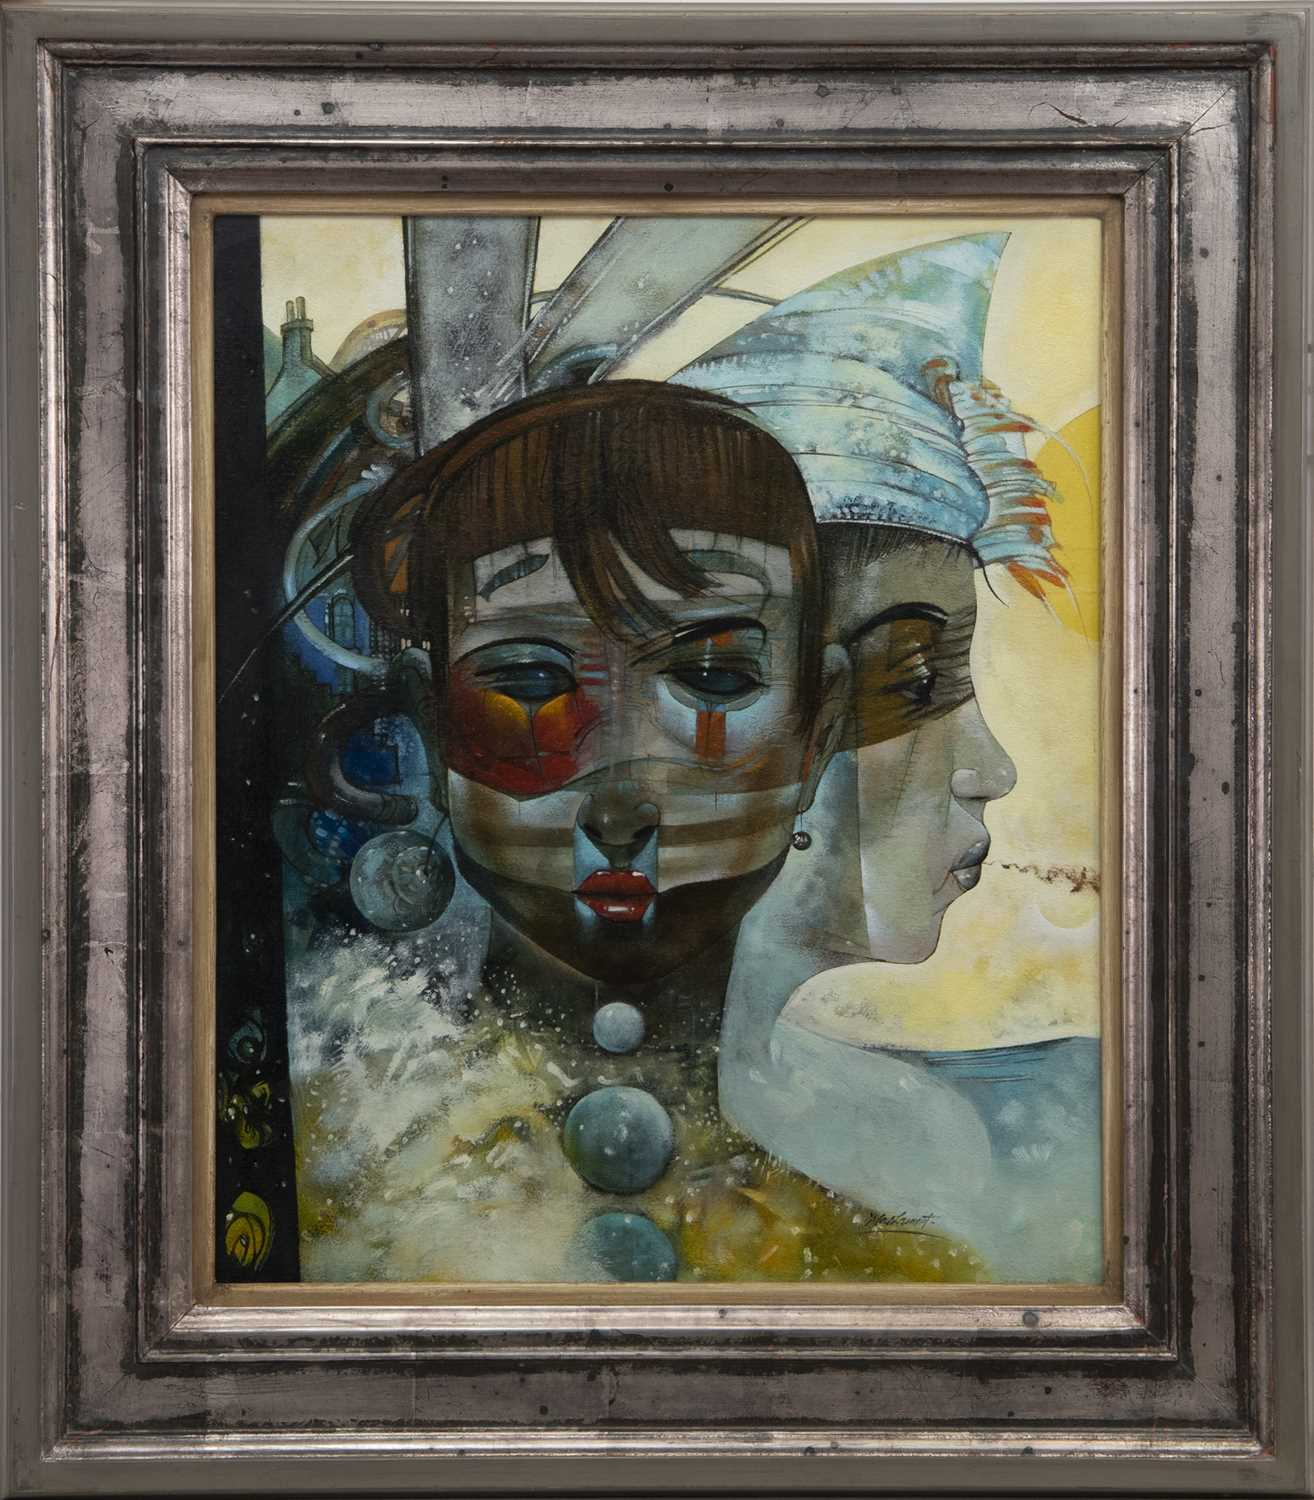 Lot 548 - CURTAIN CALL, AN OIL BY NEIL LAMONT